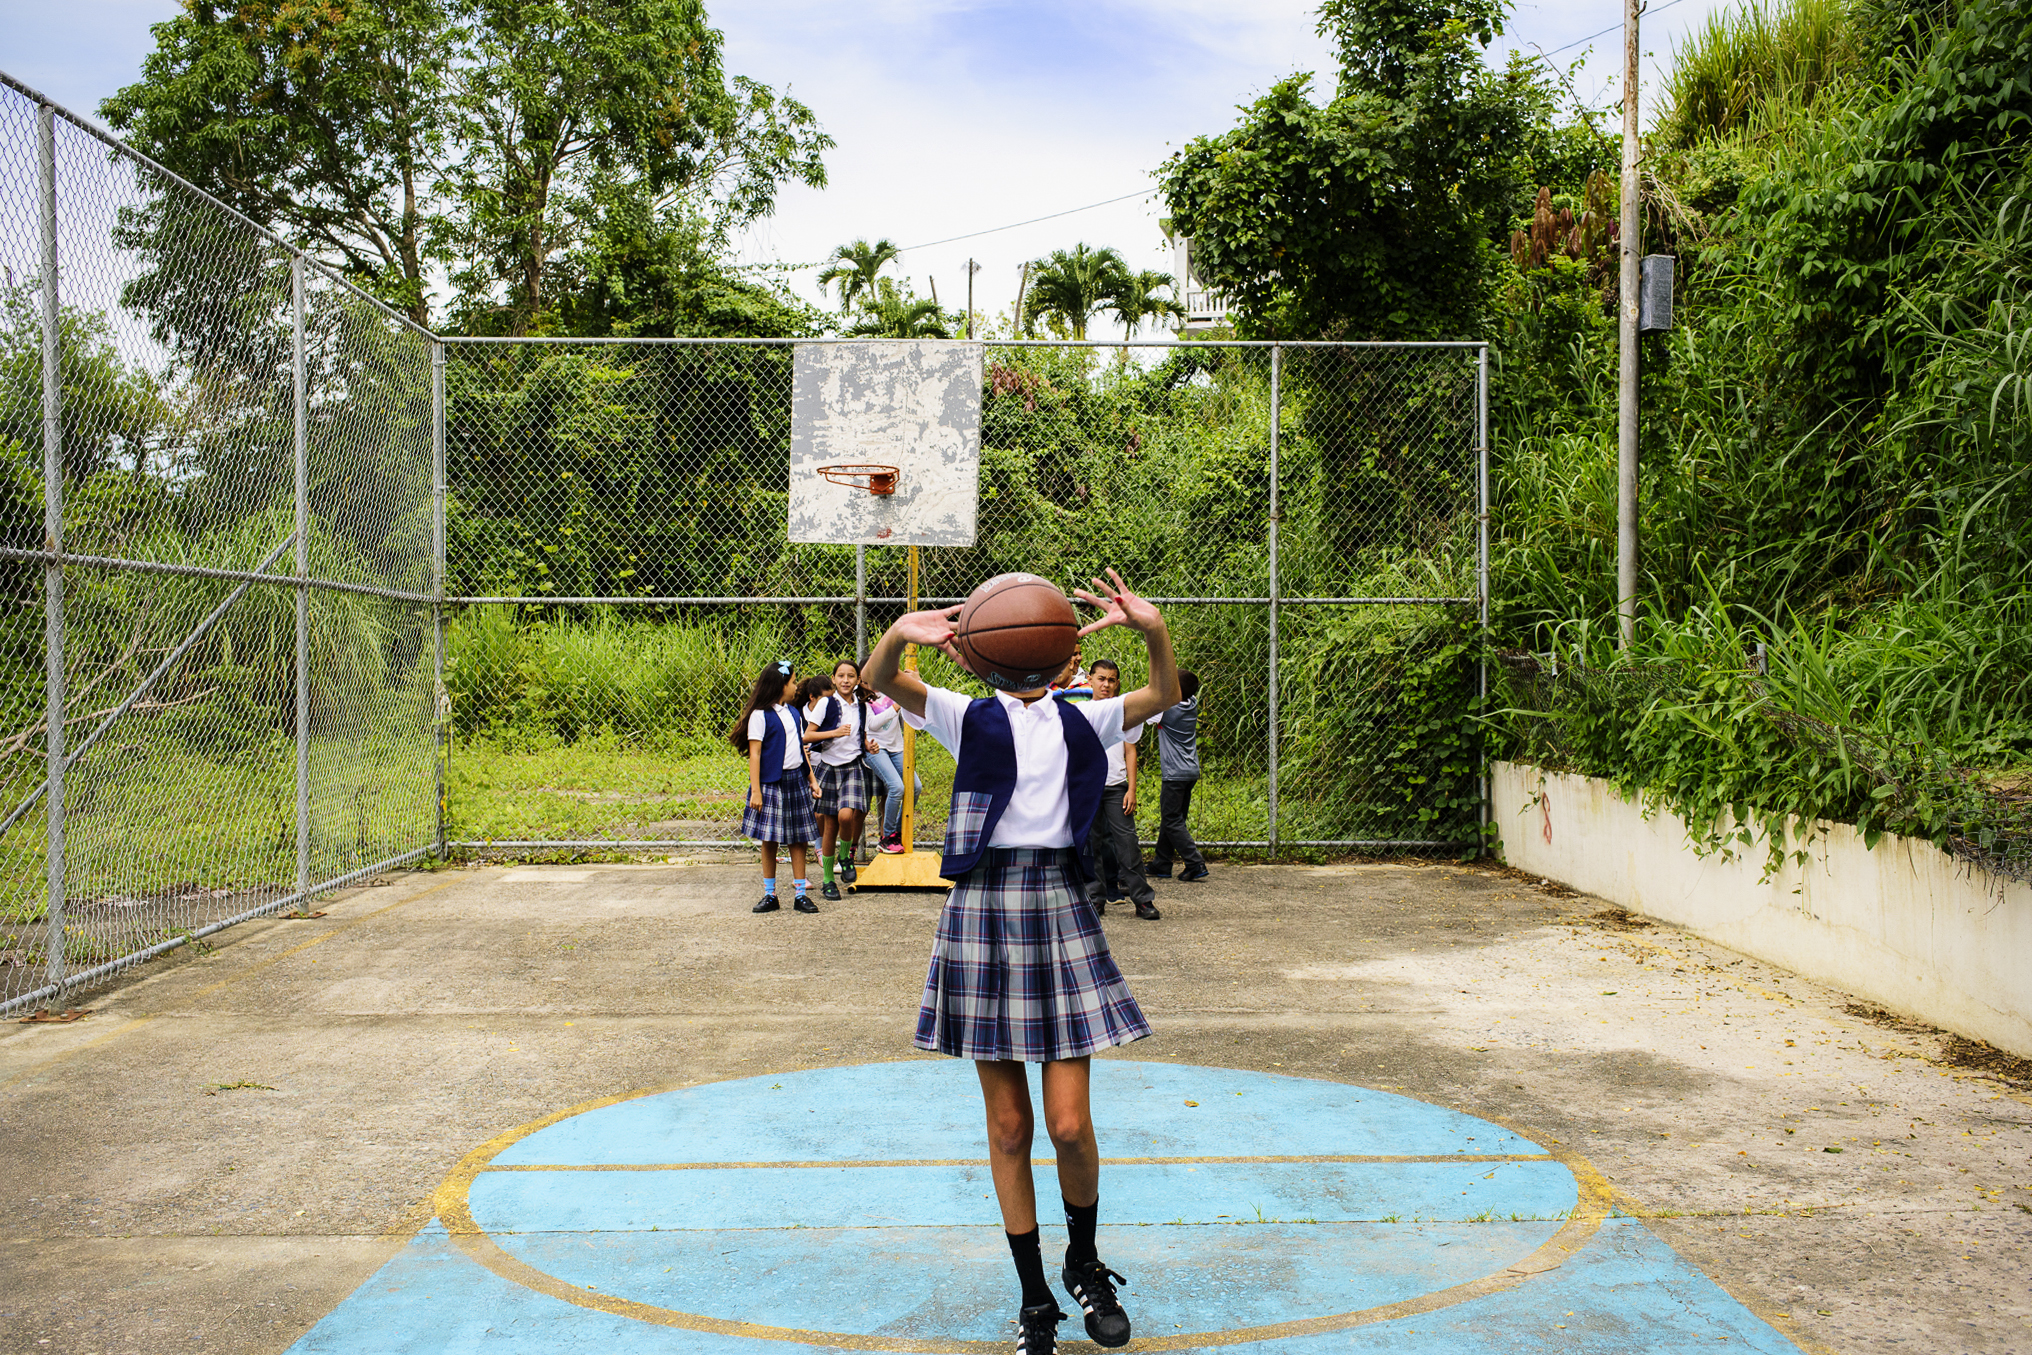 About a quarter of Puerto Rico's schools are shutting down. Here's a look inside one.